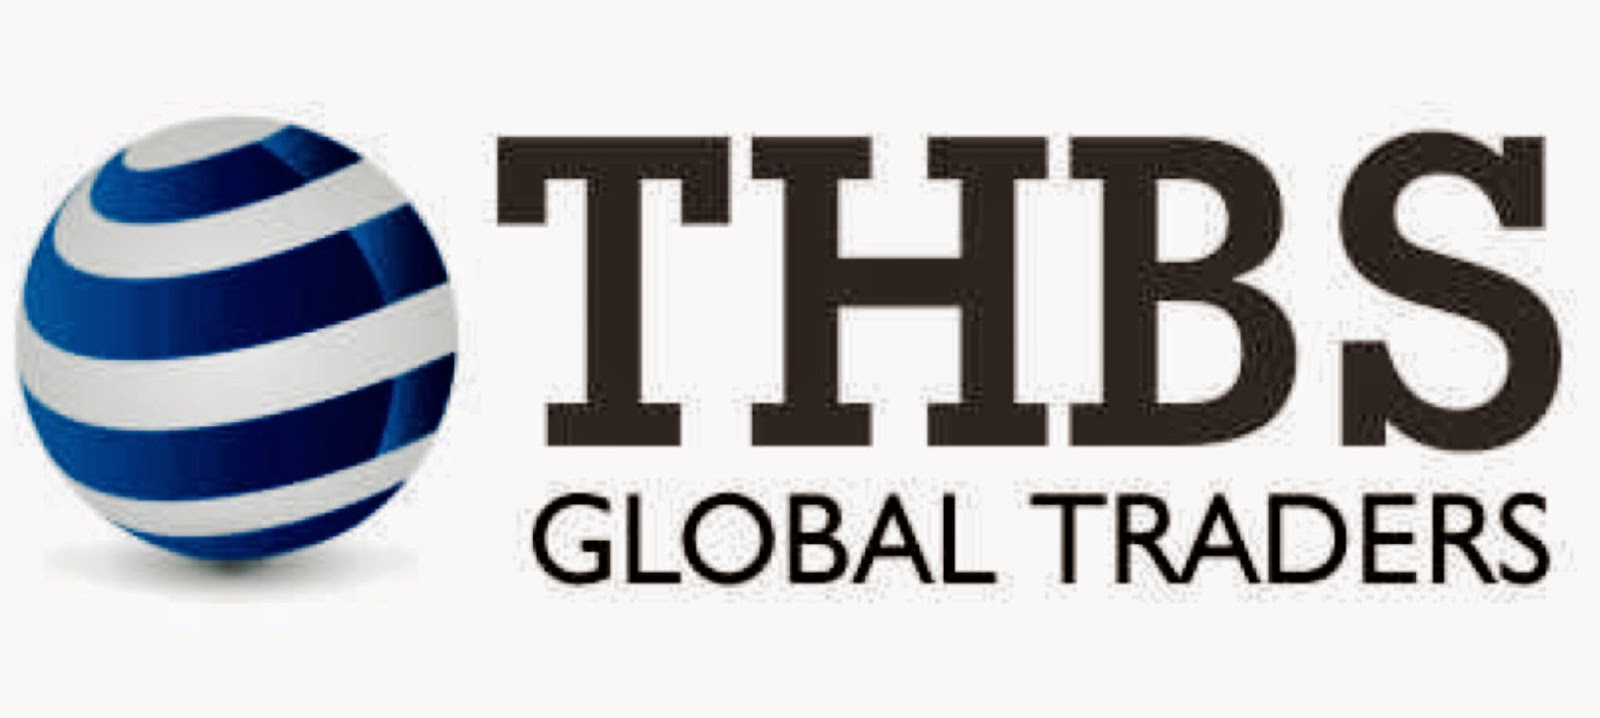 www.thbsglobaltraders.com